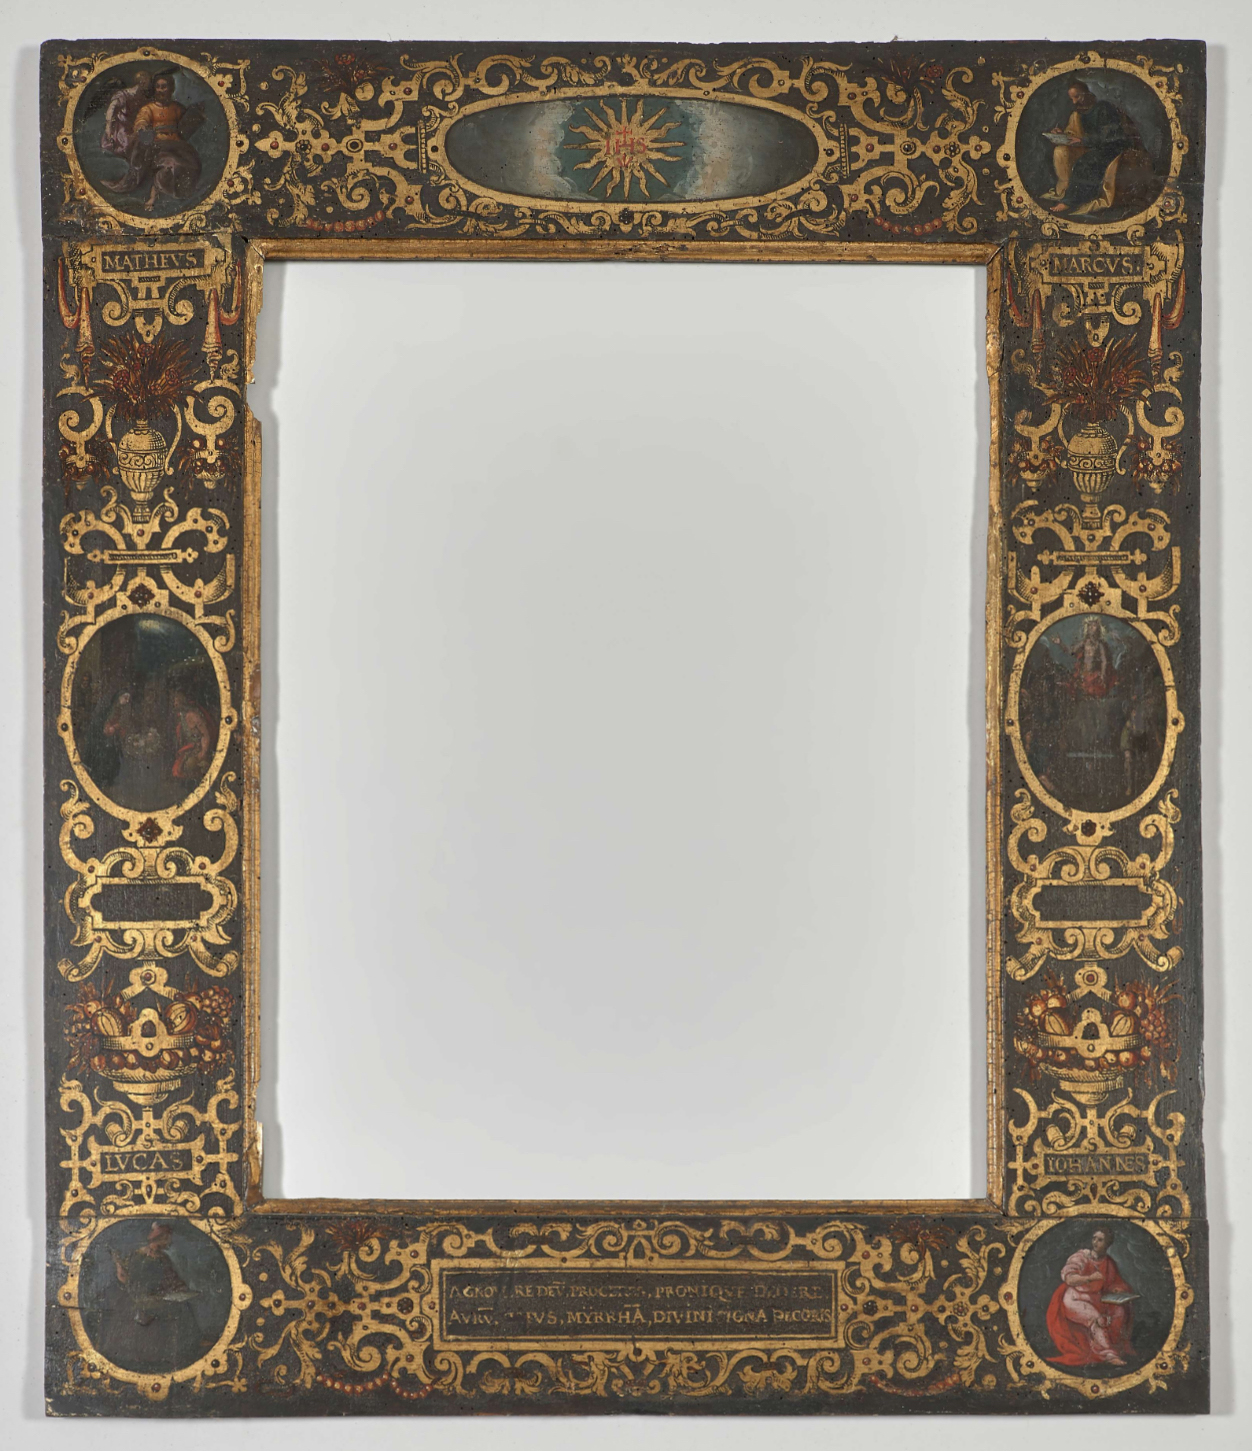 Artcurial: sale of antique frames in Paris 2018 | The Frame Blog